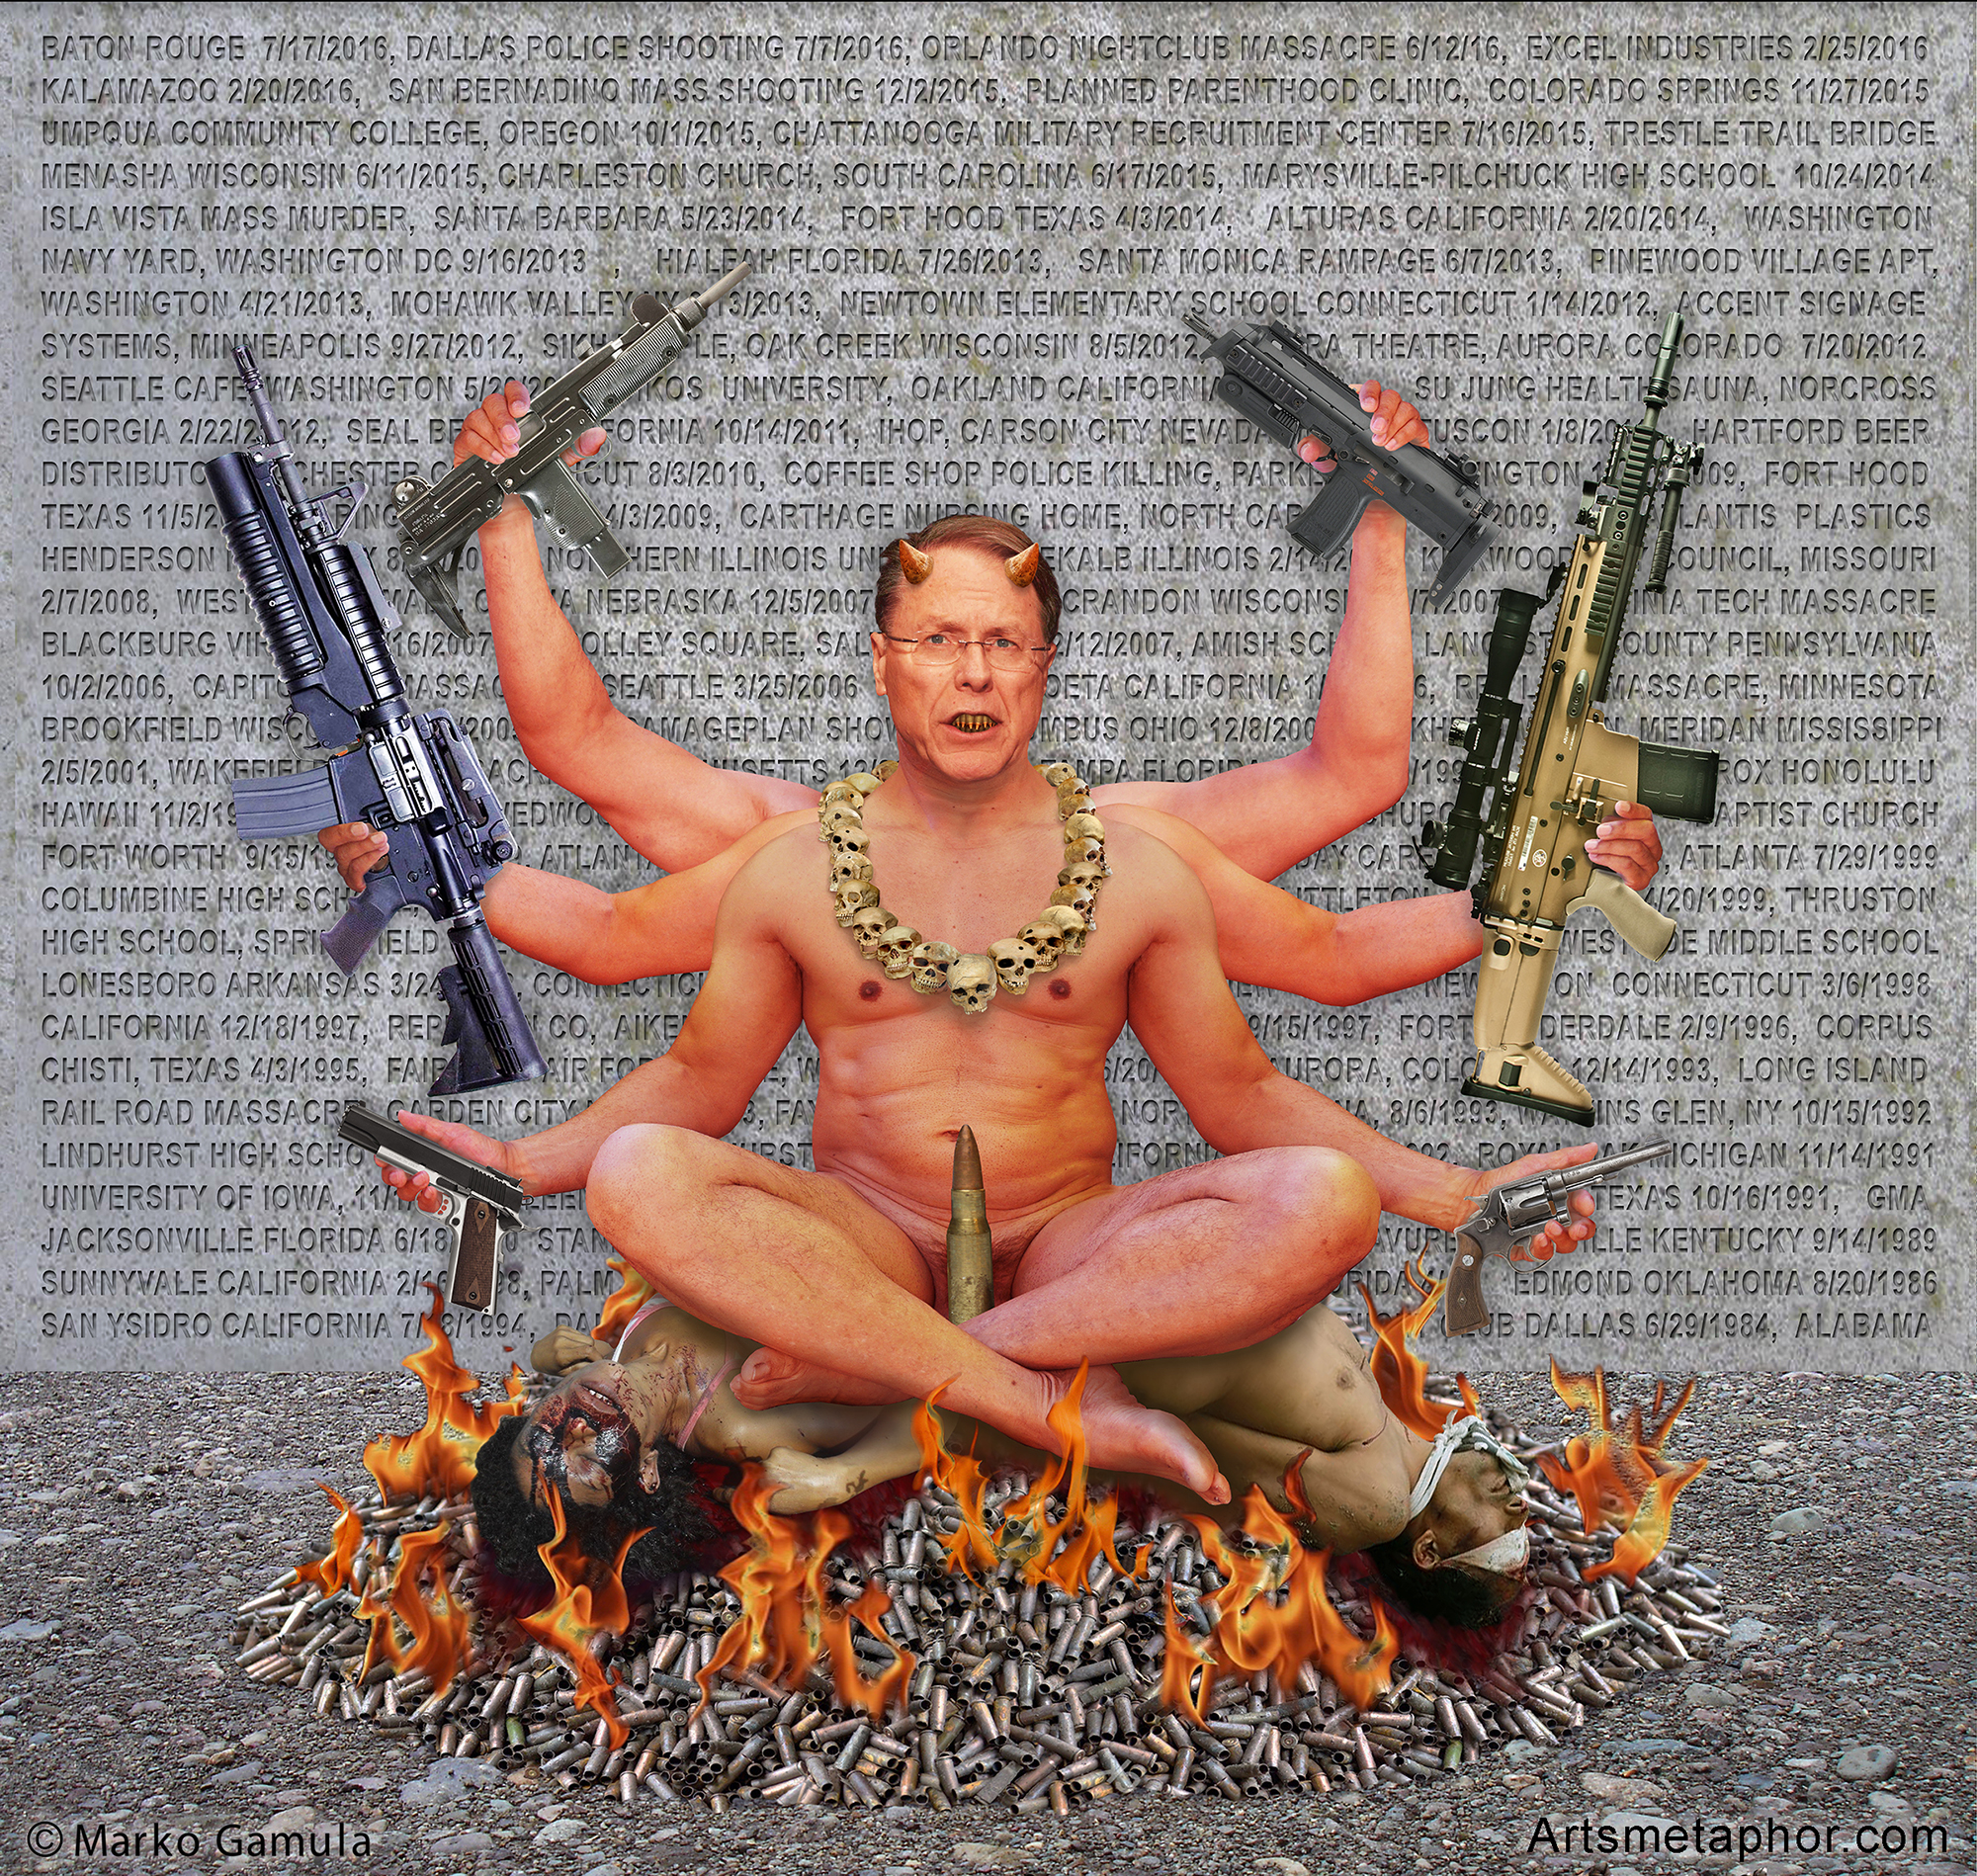 NRA: God of Death